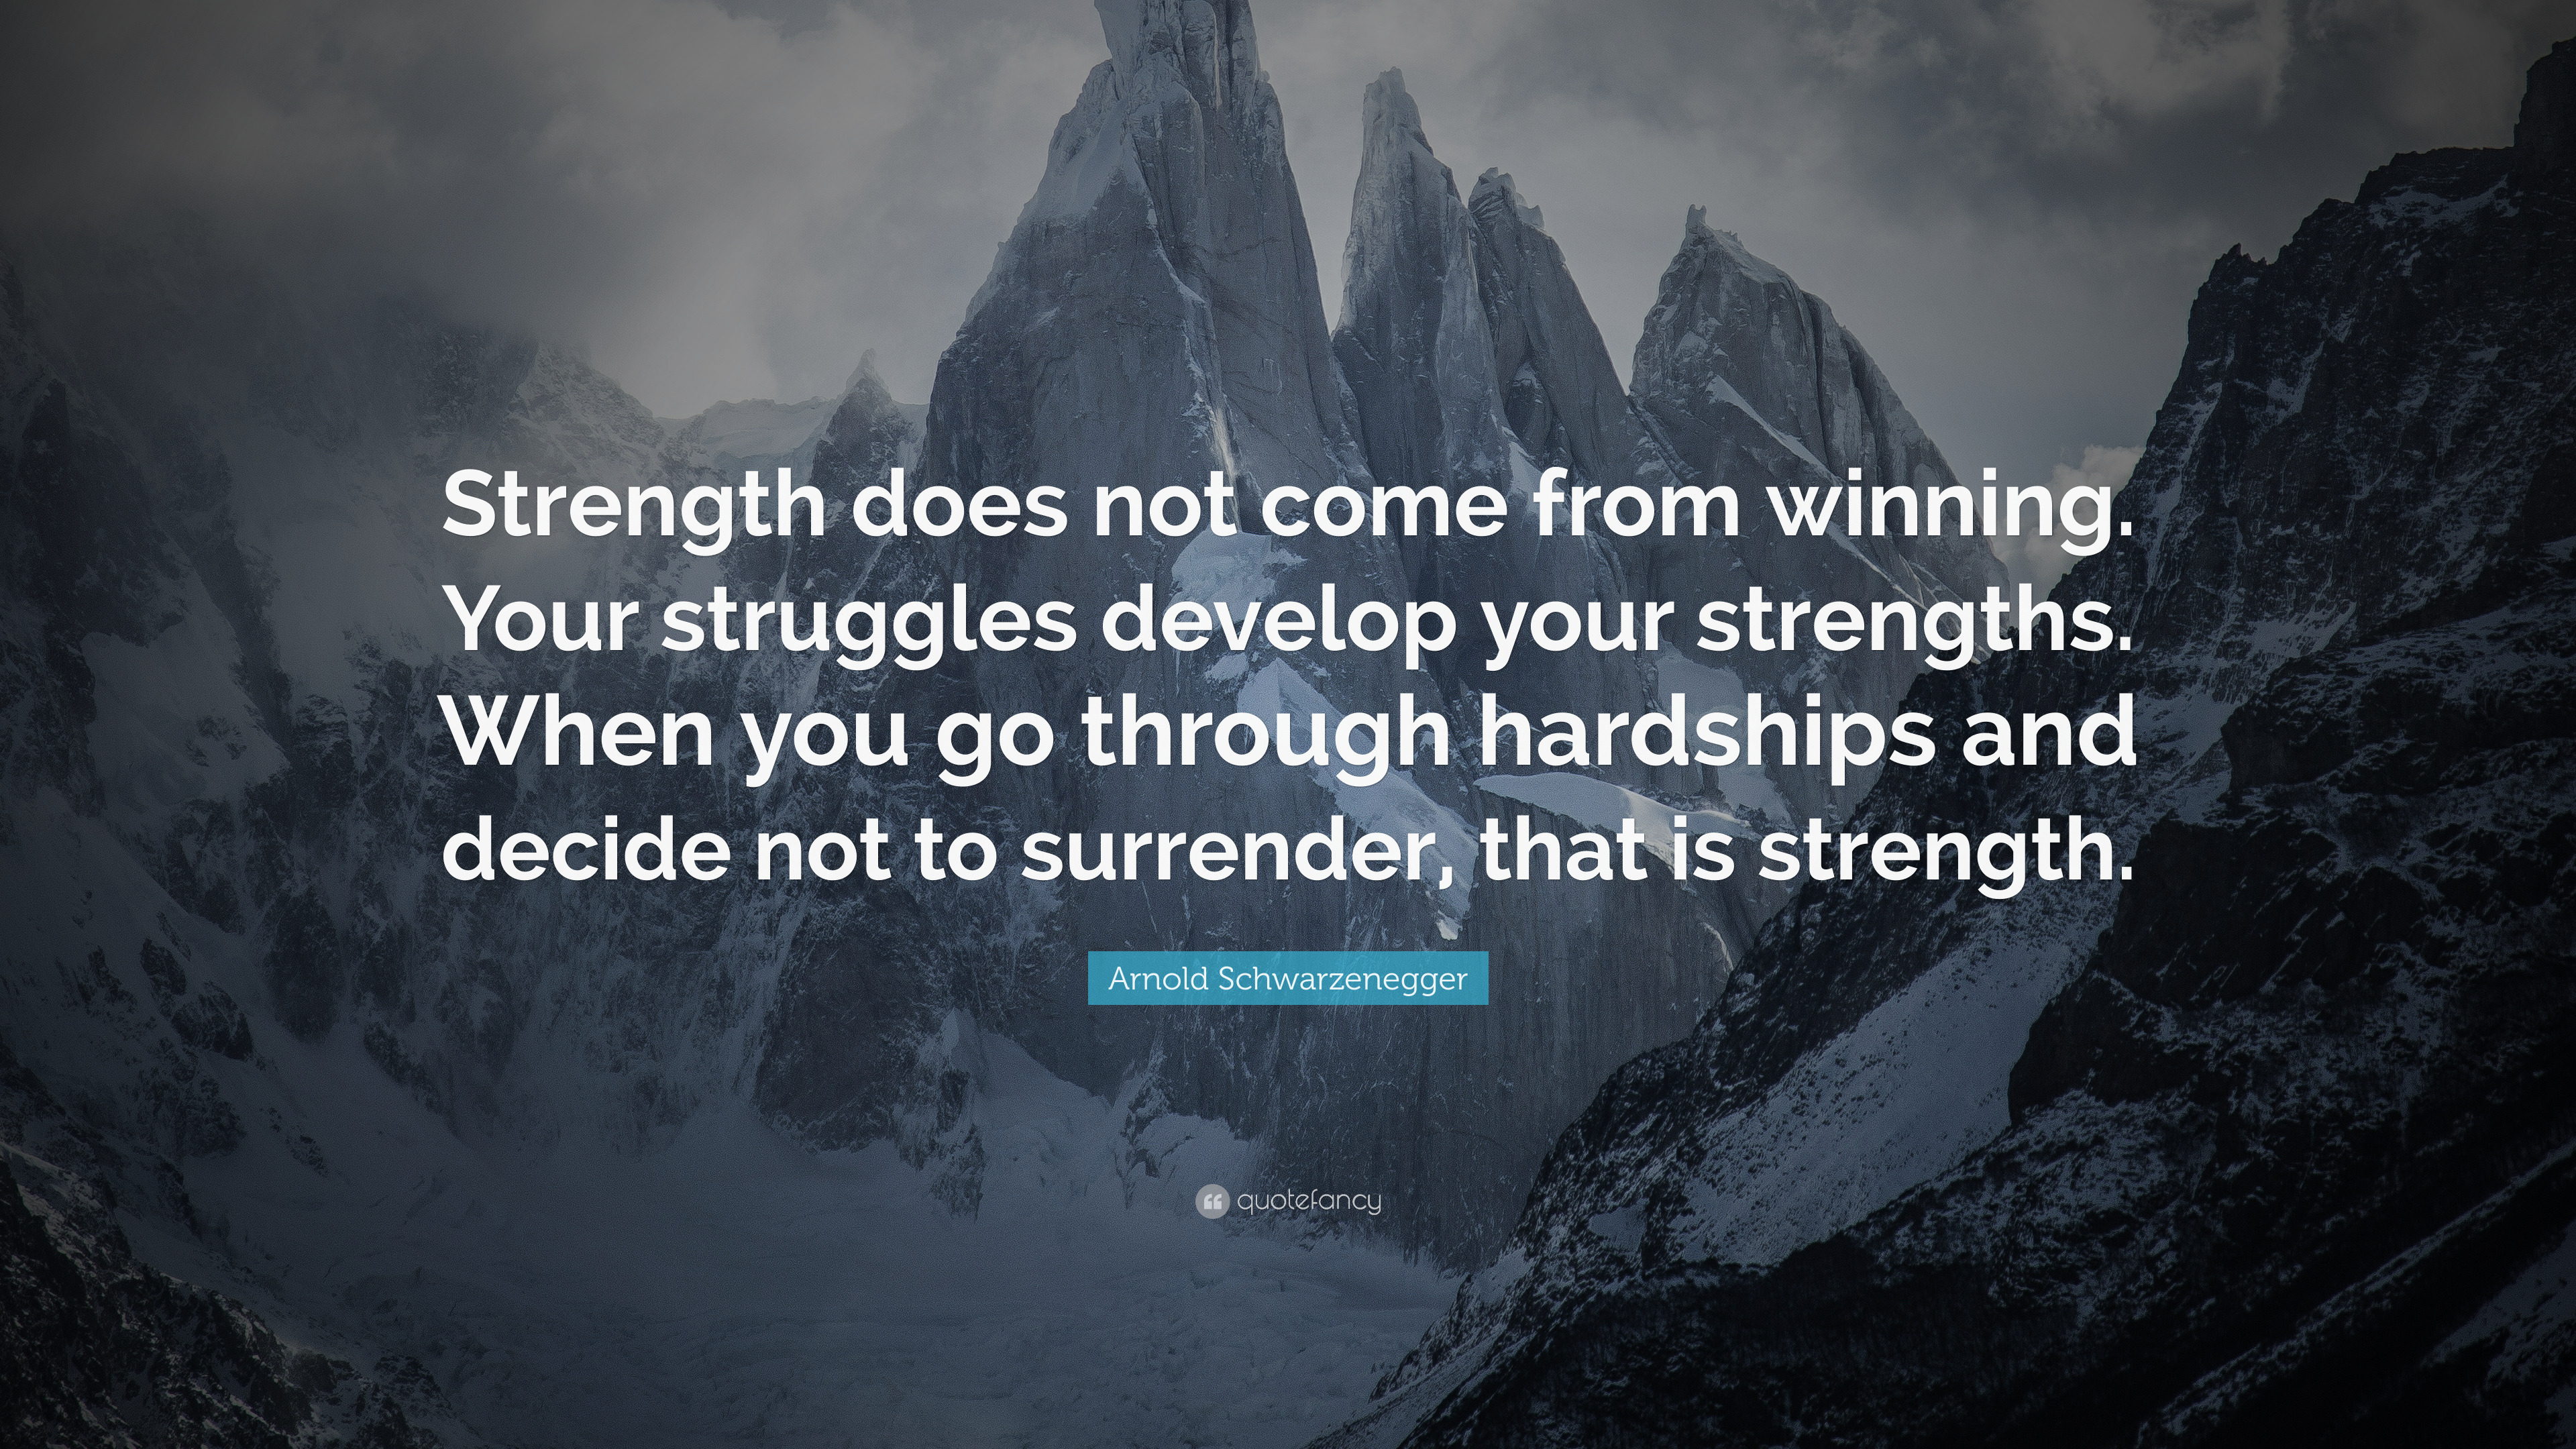 Quotes Strength Quotes About Strength 23 Wallpapers  Quotefancy